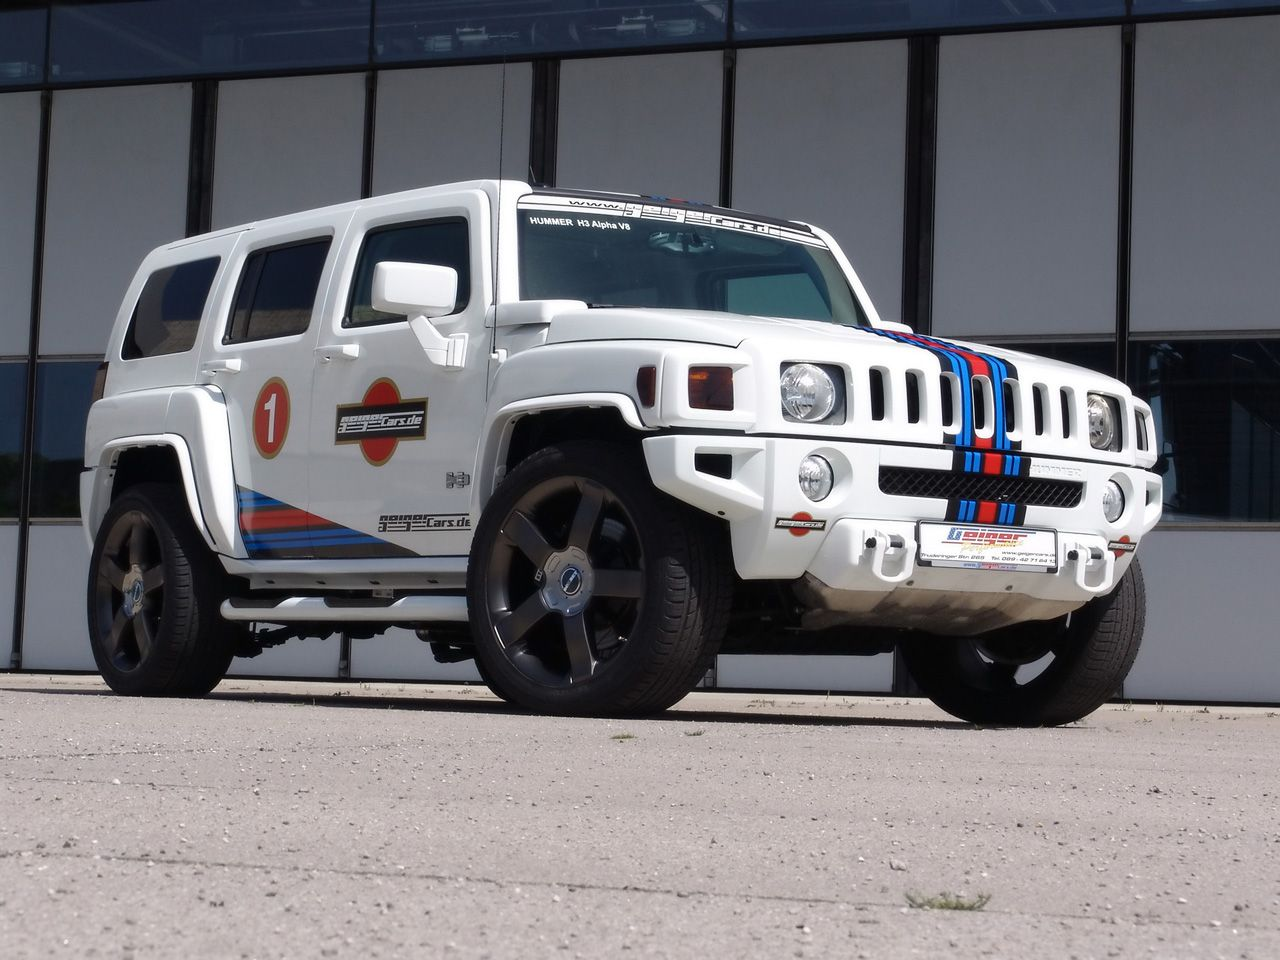 92 best h3 hummer images on pinterest hummer h3 cars and dream cars hummer h3 vanachro Gallery